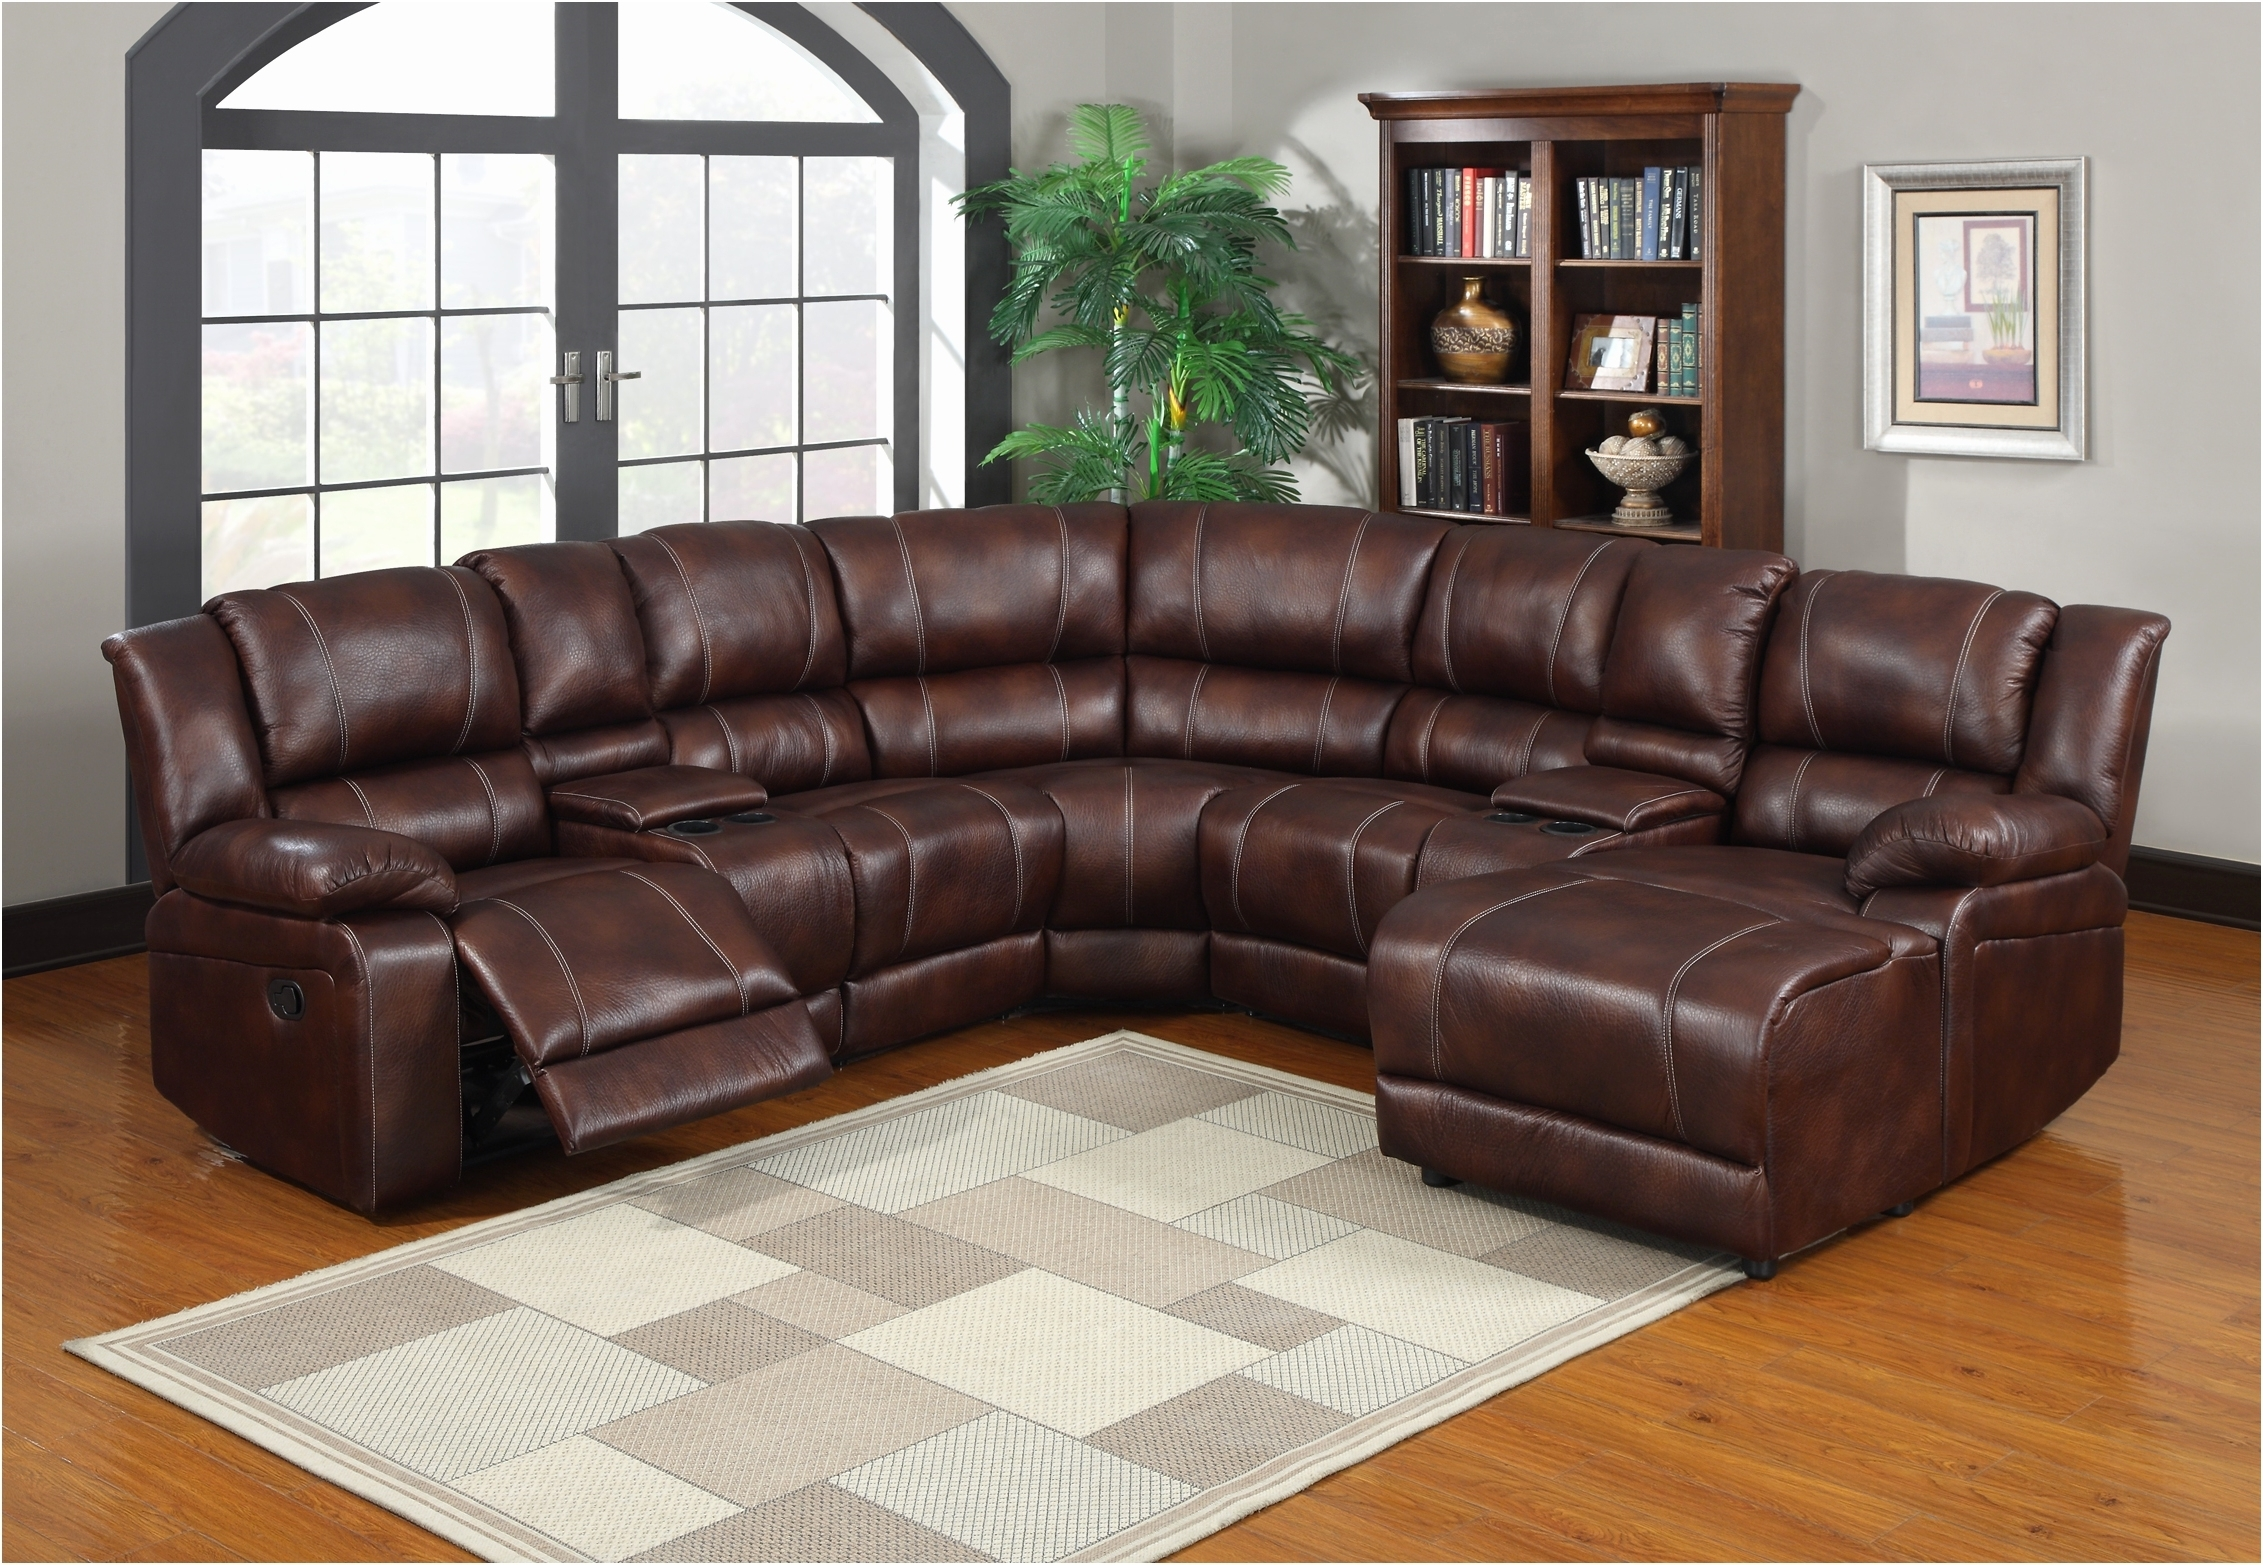 Sectional Sofas With Cup Holders With Regard To Fashionable Sofa : Leather Sectional Sofas With Recliners Fresh Sectional (View 13 of 20)